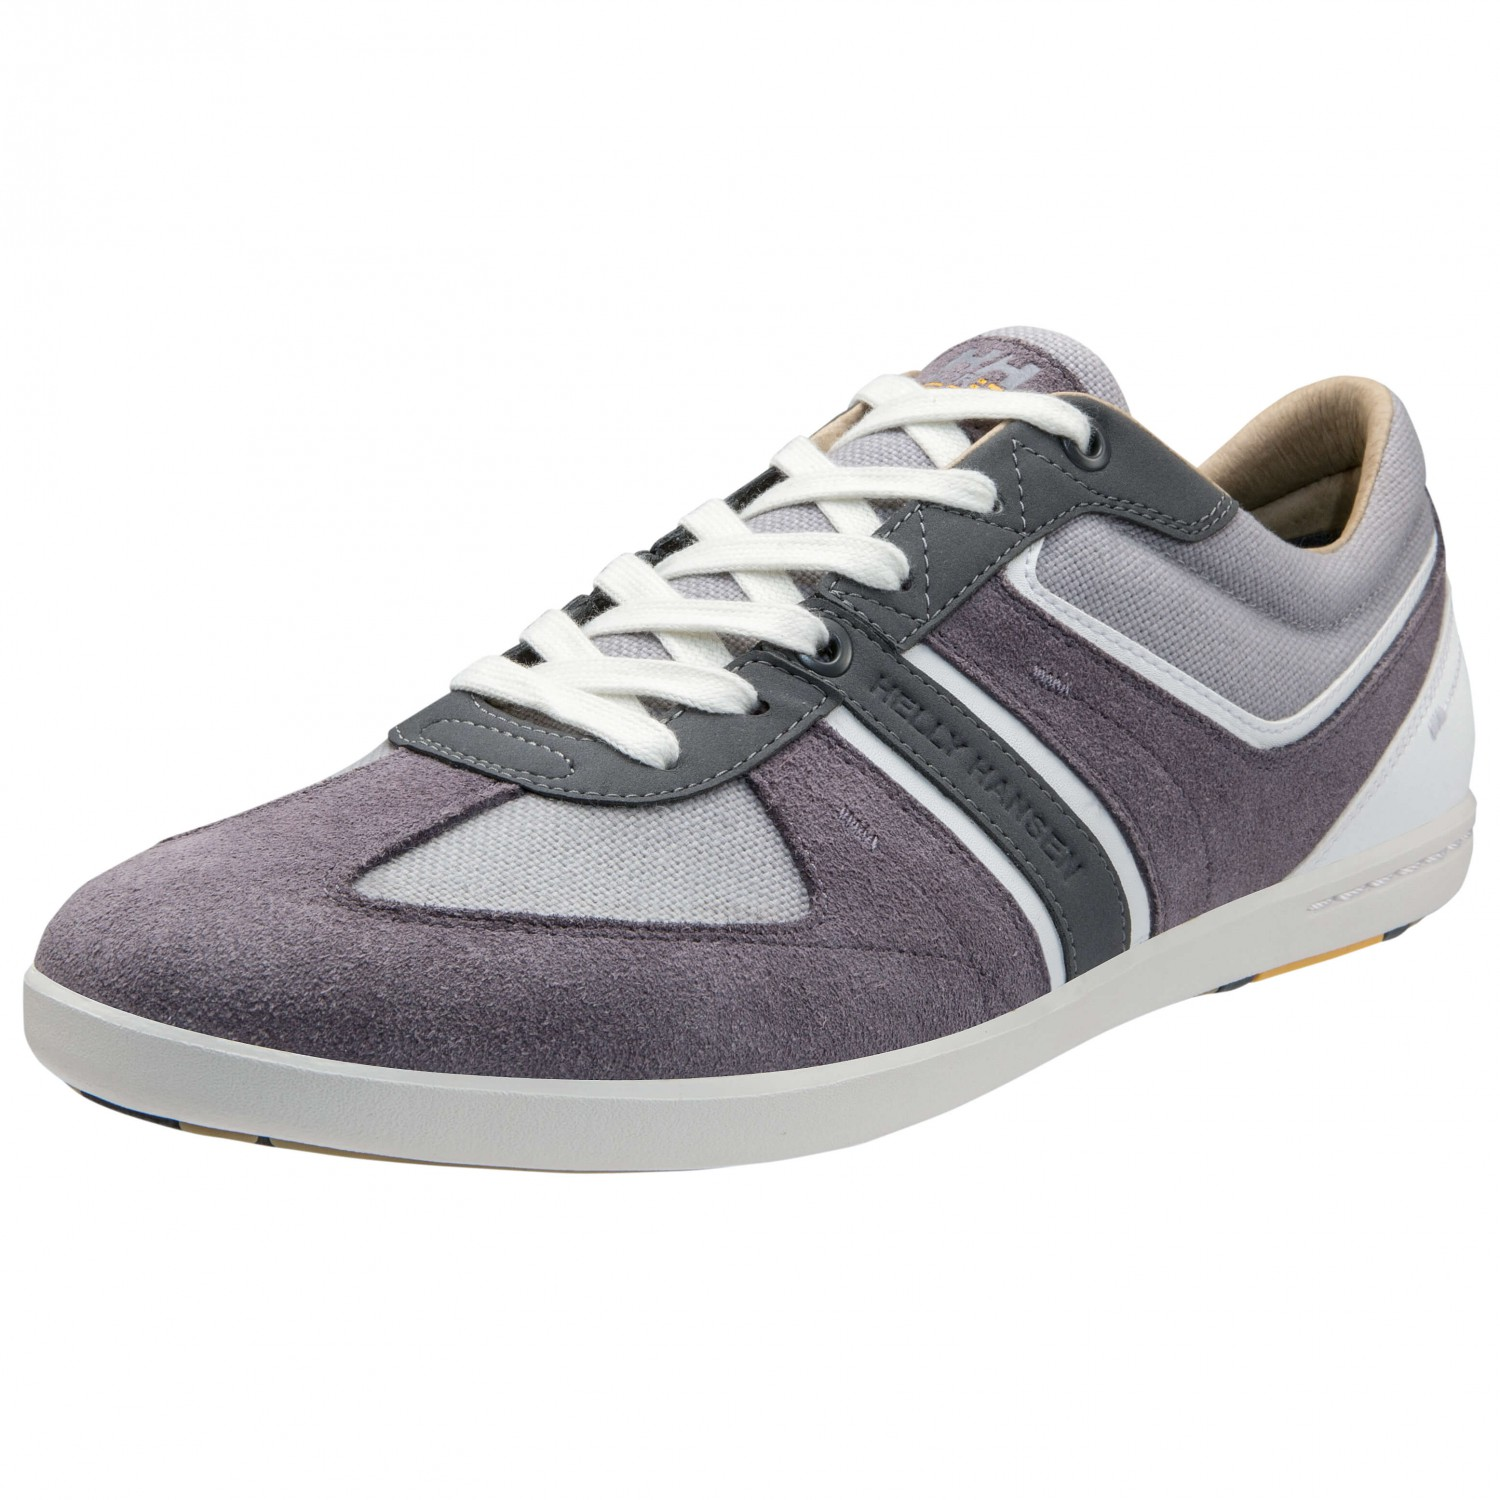 ... Helly Hansen - Crewline Marina - Sneaker Excalibur Off  White Grey Charcoal  d584c66120b